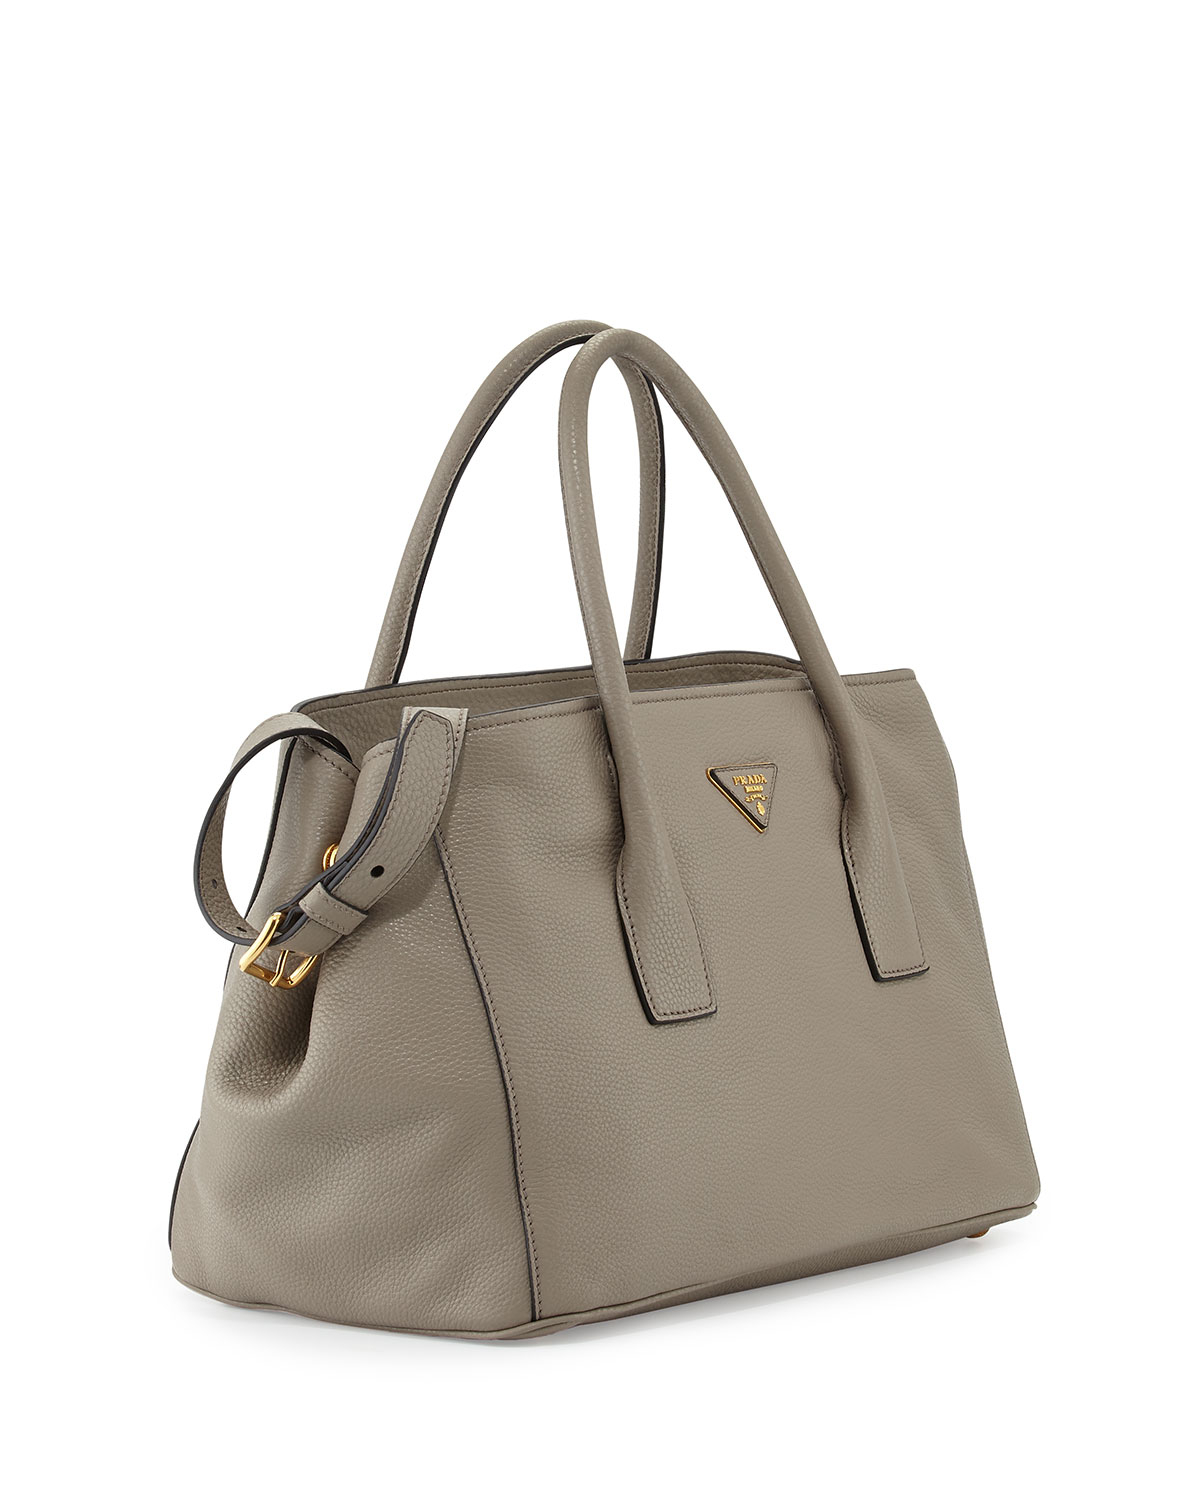 265417a0aa94 ... shopping prada vitello daino garden tote bag in gray greyargilla lyst  860f8 86680